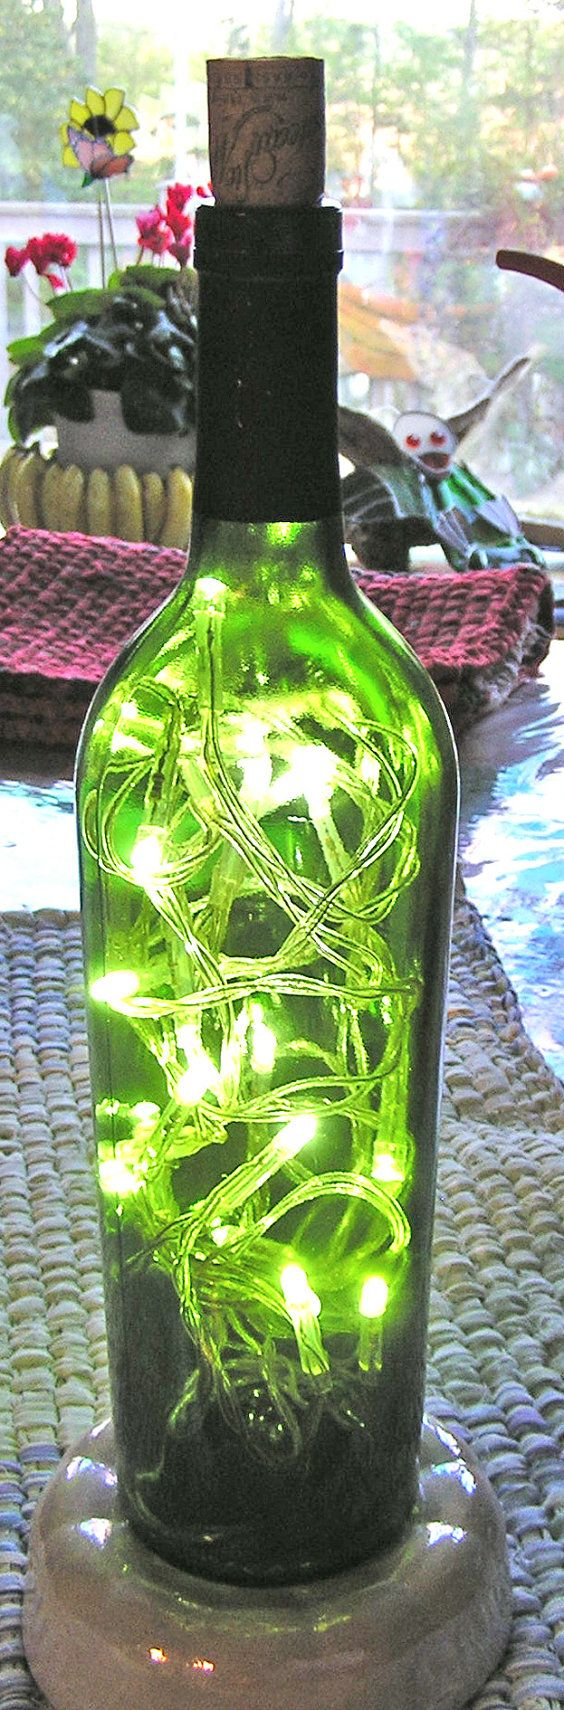 Lighted Wine Bottle Battery Operated Led Lights